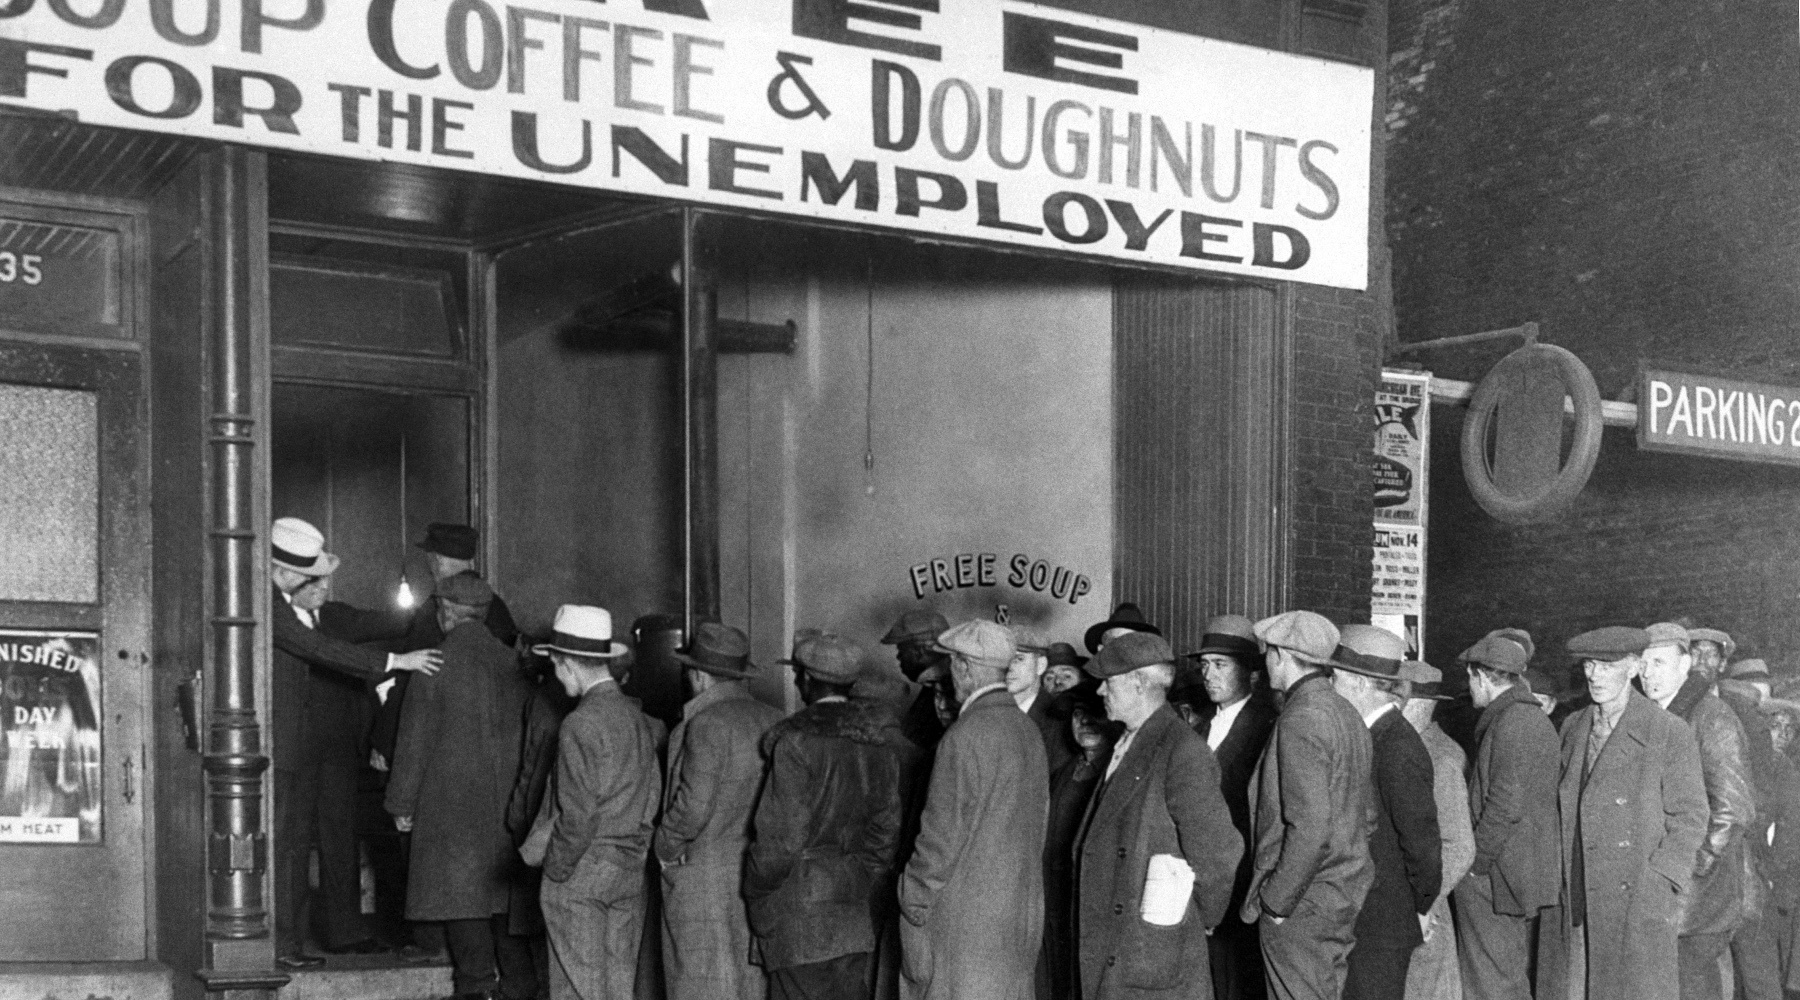 Line of unemployed people for free soup and coffee with donuts